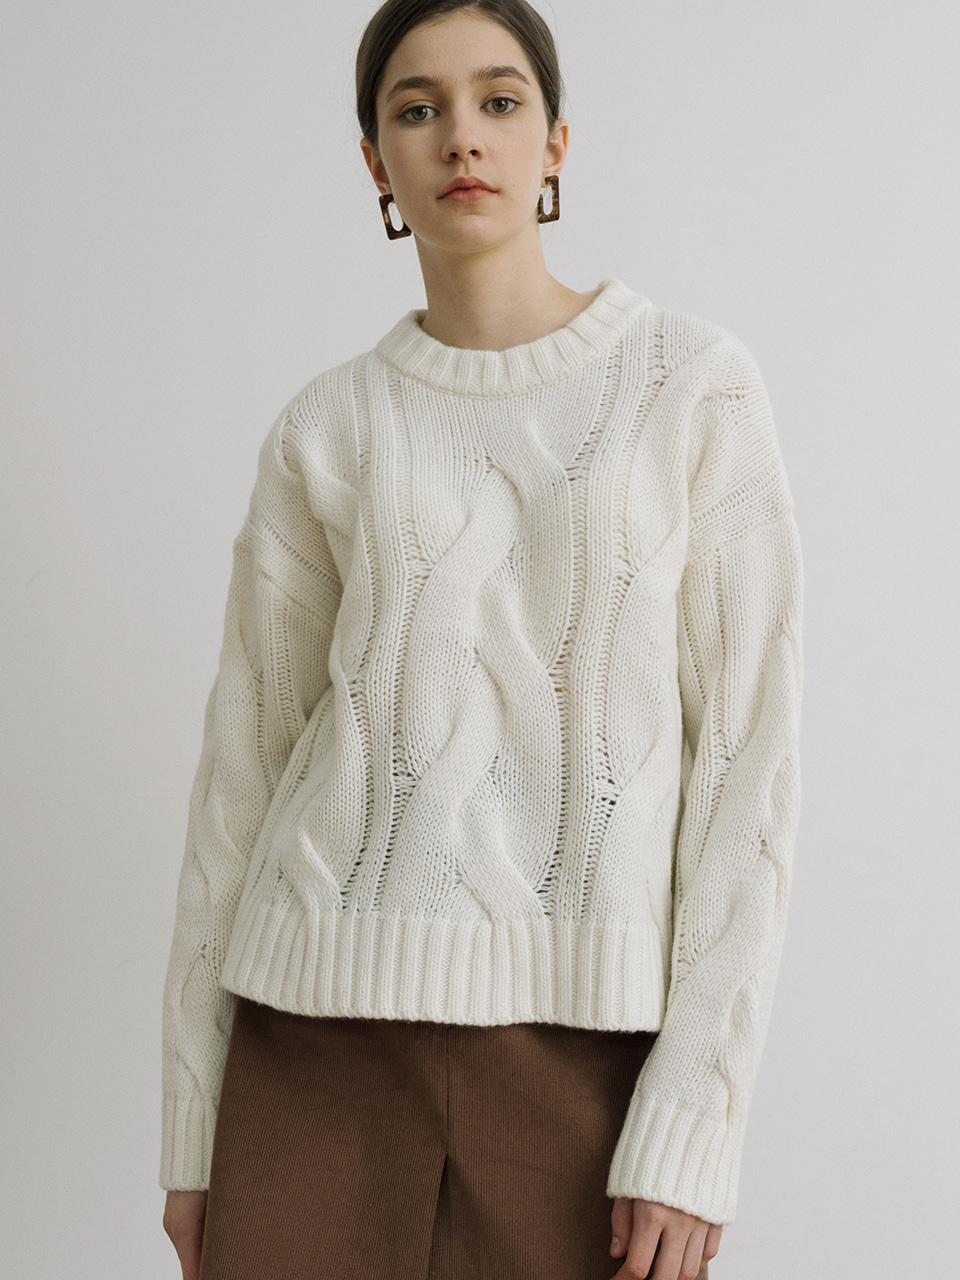 monts 1196 large-shape twisting knitwear (ivory)